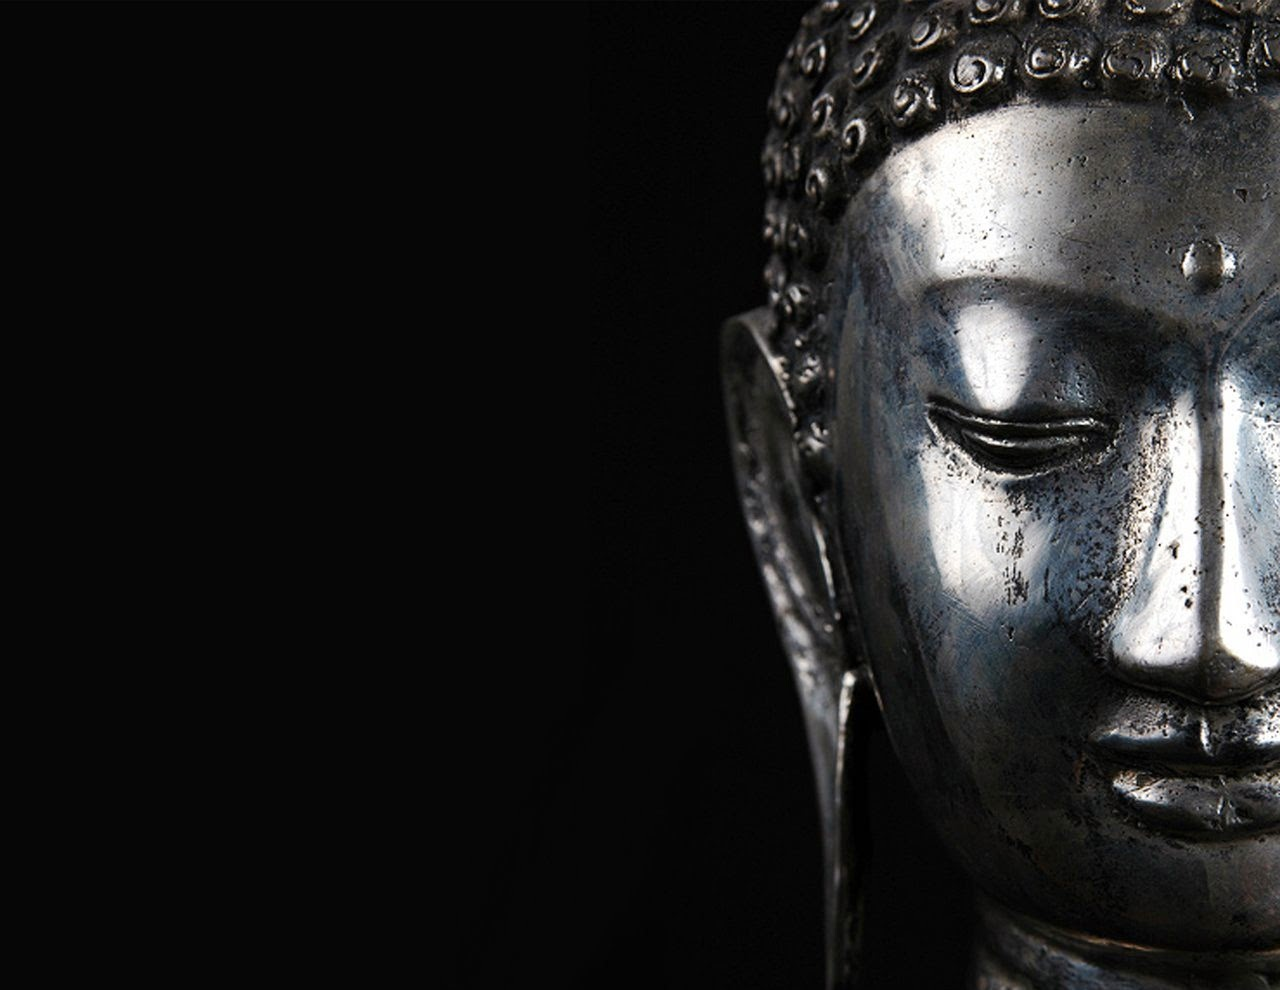 Temple Quotes Wallpaper Pc Hd Lord Buddha Face Art Hd Images And Statue Wallpaper Pixhome